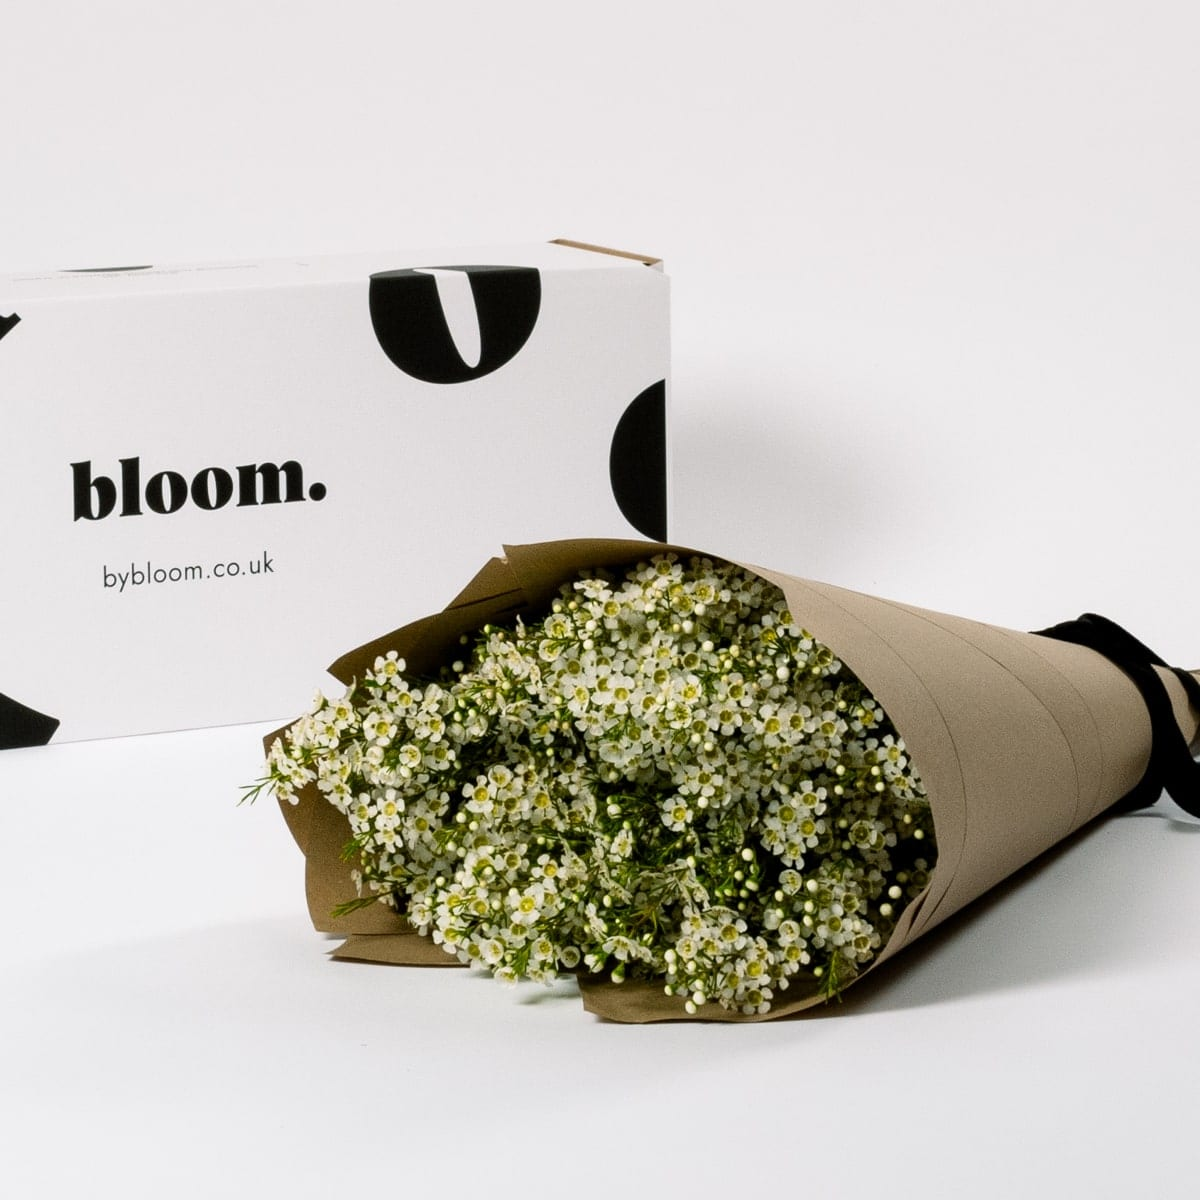 Bloom Flower Delivery | Cloud White Wax Flower